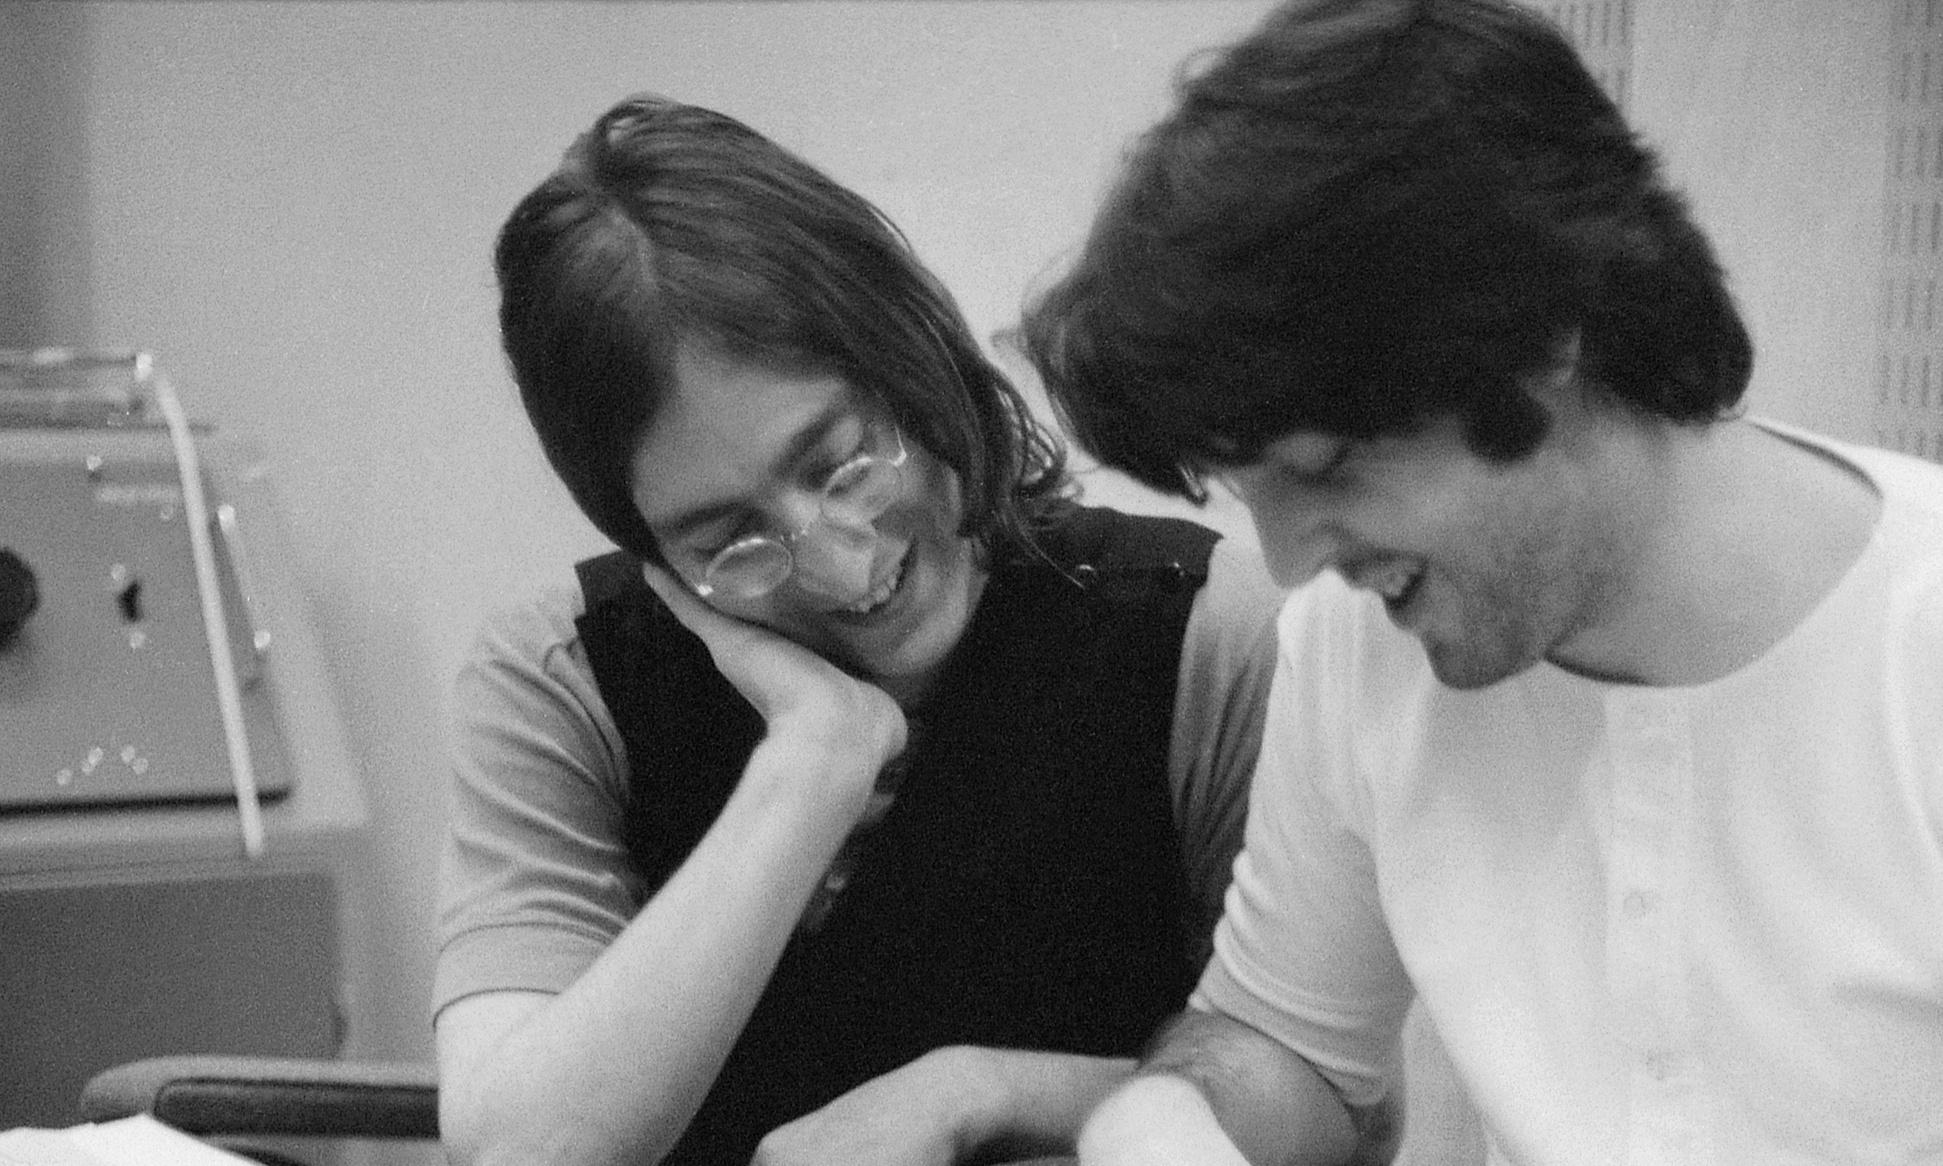 Paul McCartney on Linda's best photos: 'Seeing the joy between me and John really helped me'